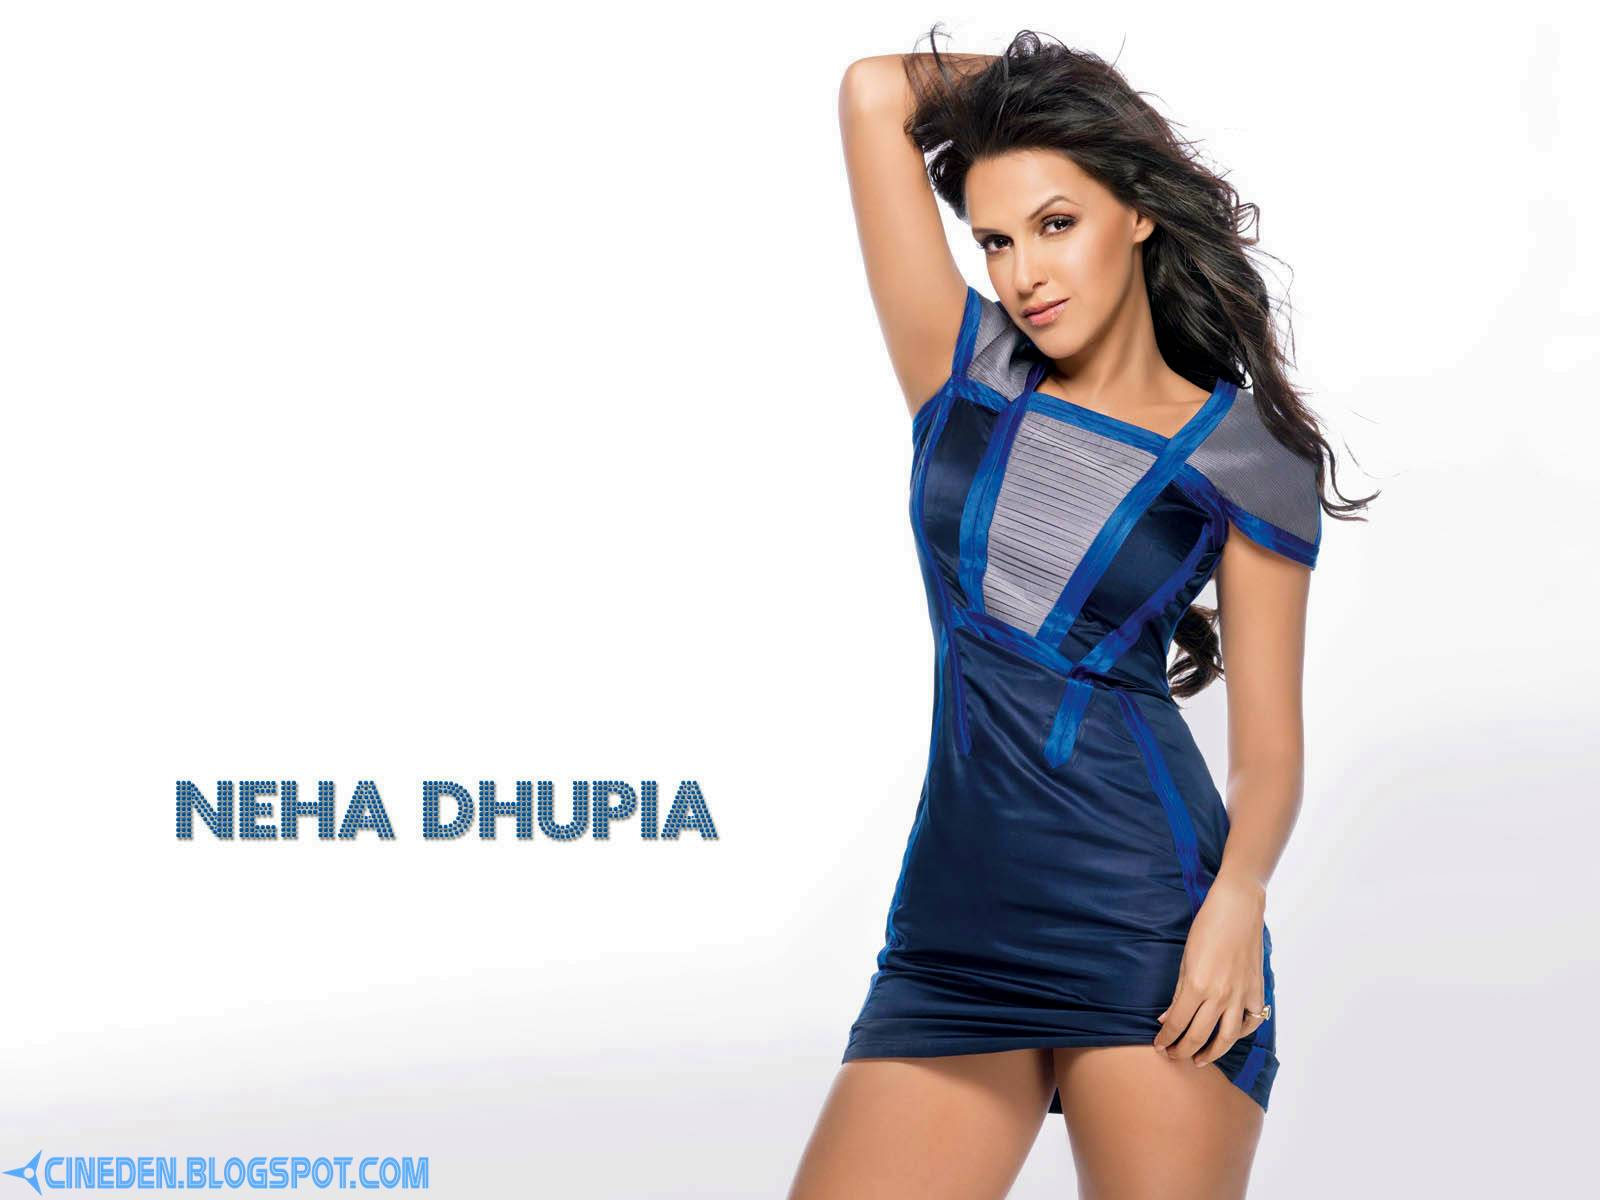 I was clueless 10 years ago: Neha Dhupia - CineDen